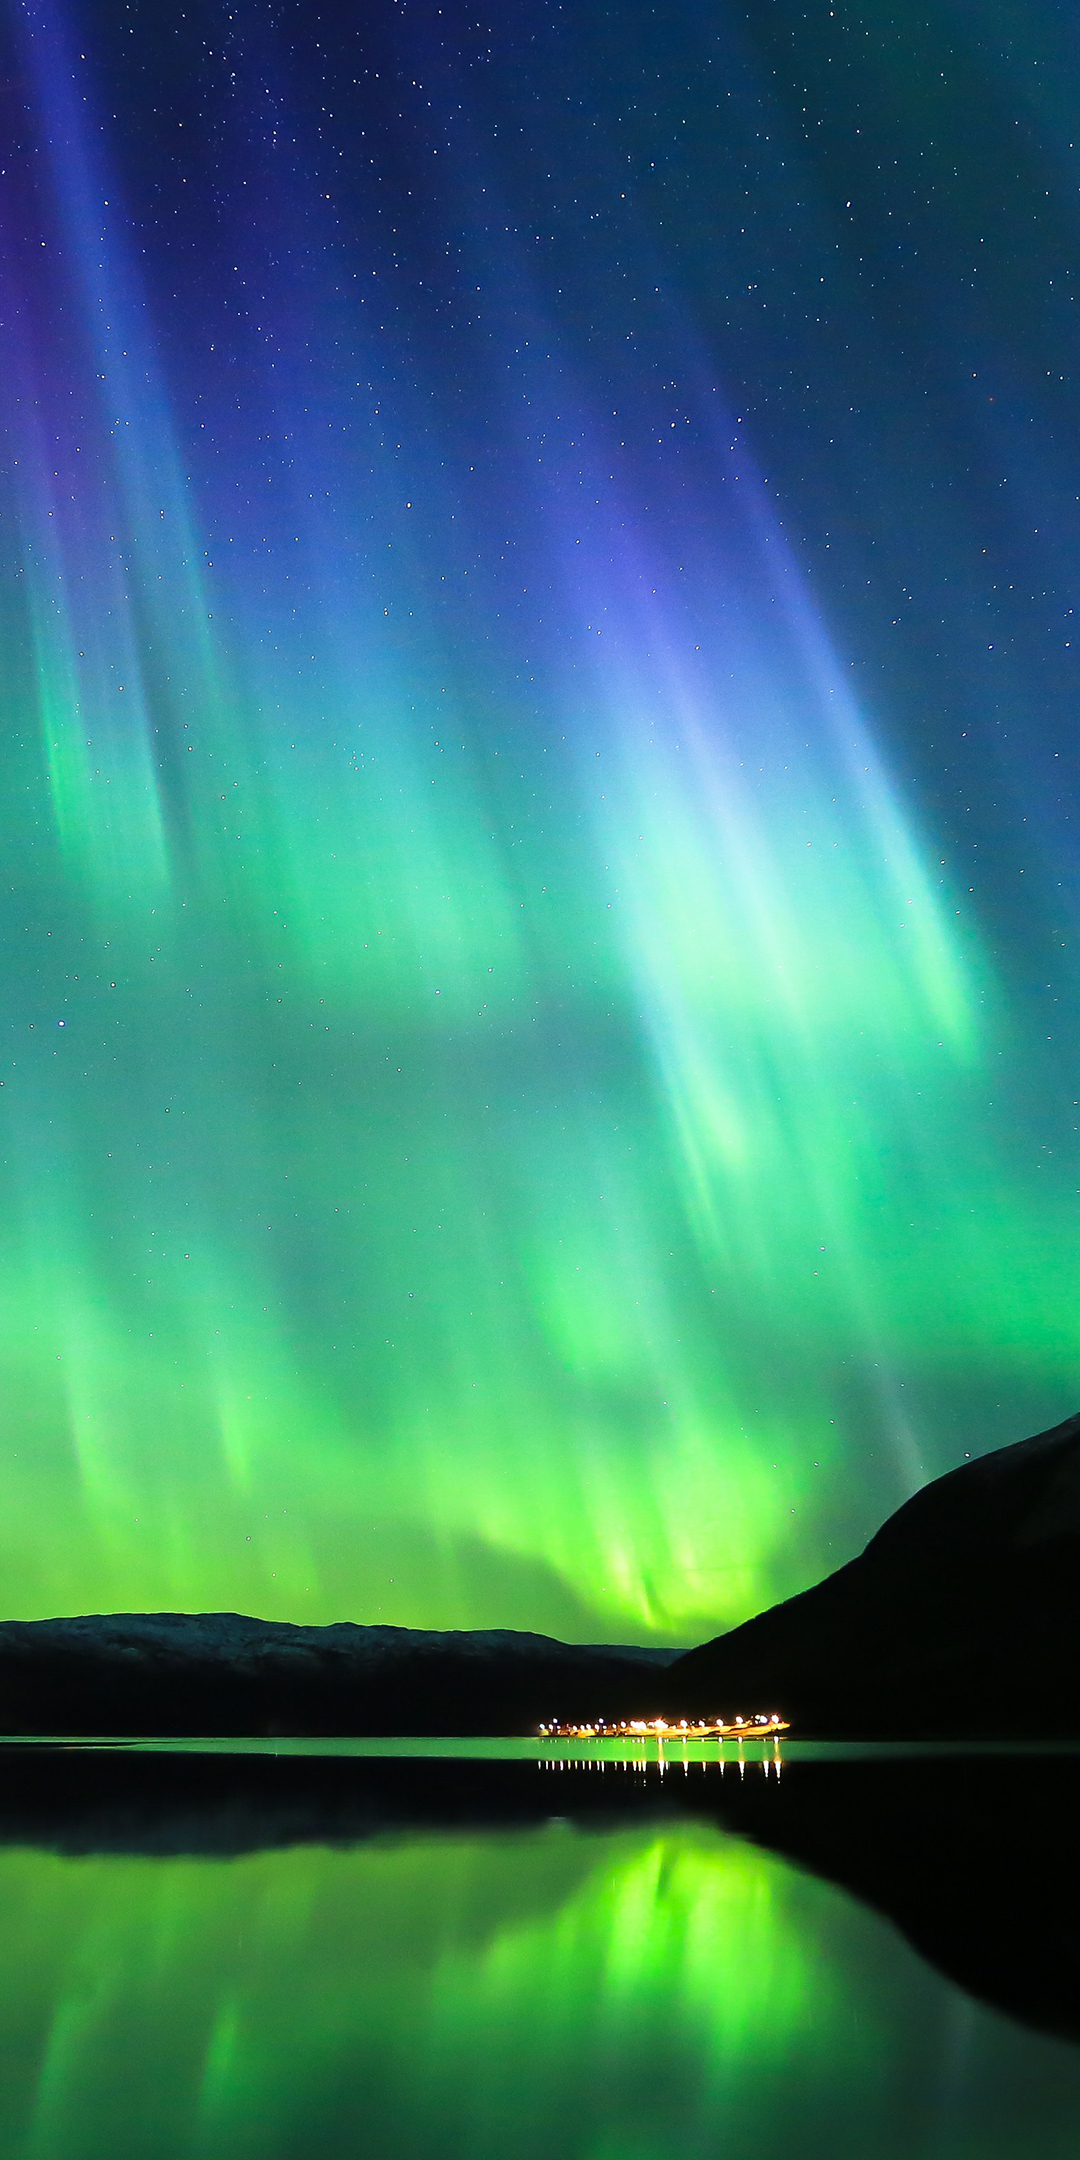 1080x2160 Aurora 4k One Plus 5t Honor 7x Honor View 10 Lg Q6 Wallpaper Hd Nature 4k Wallpapers Images Photos And Background